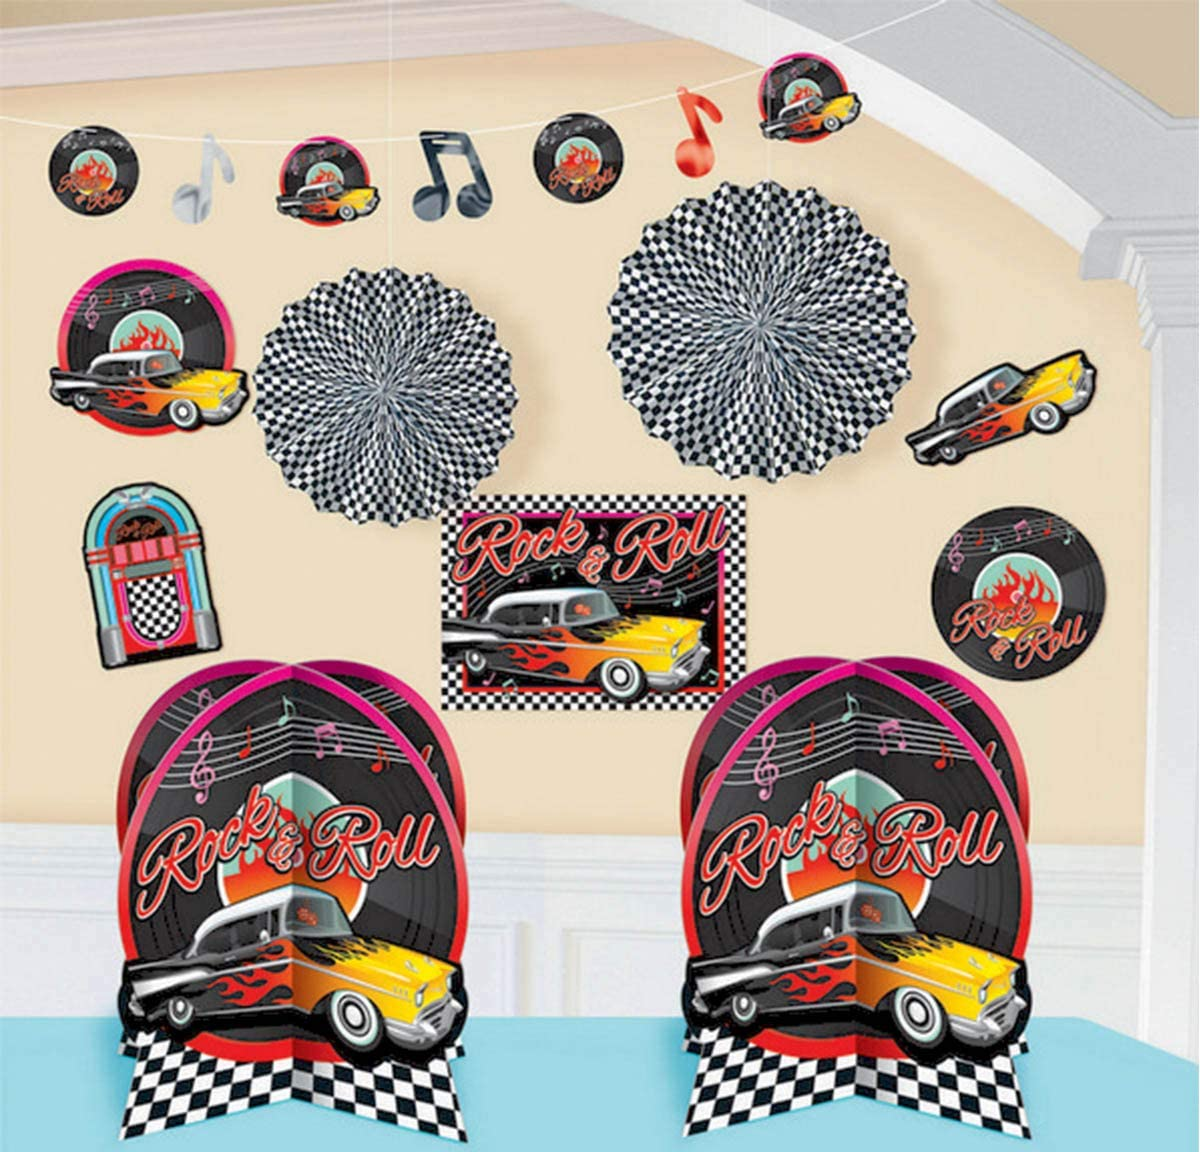 amscan Nifty 50's Theme Party Rock & Roll Decorating Kit (10 Piece), Multi Color, 15.7 x 10